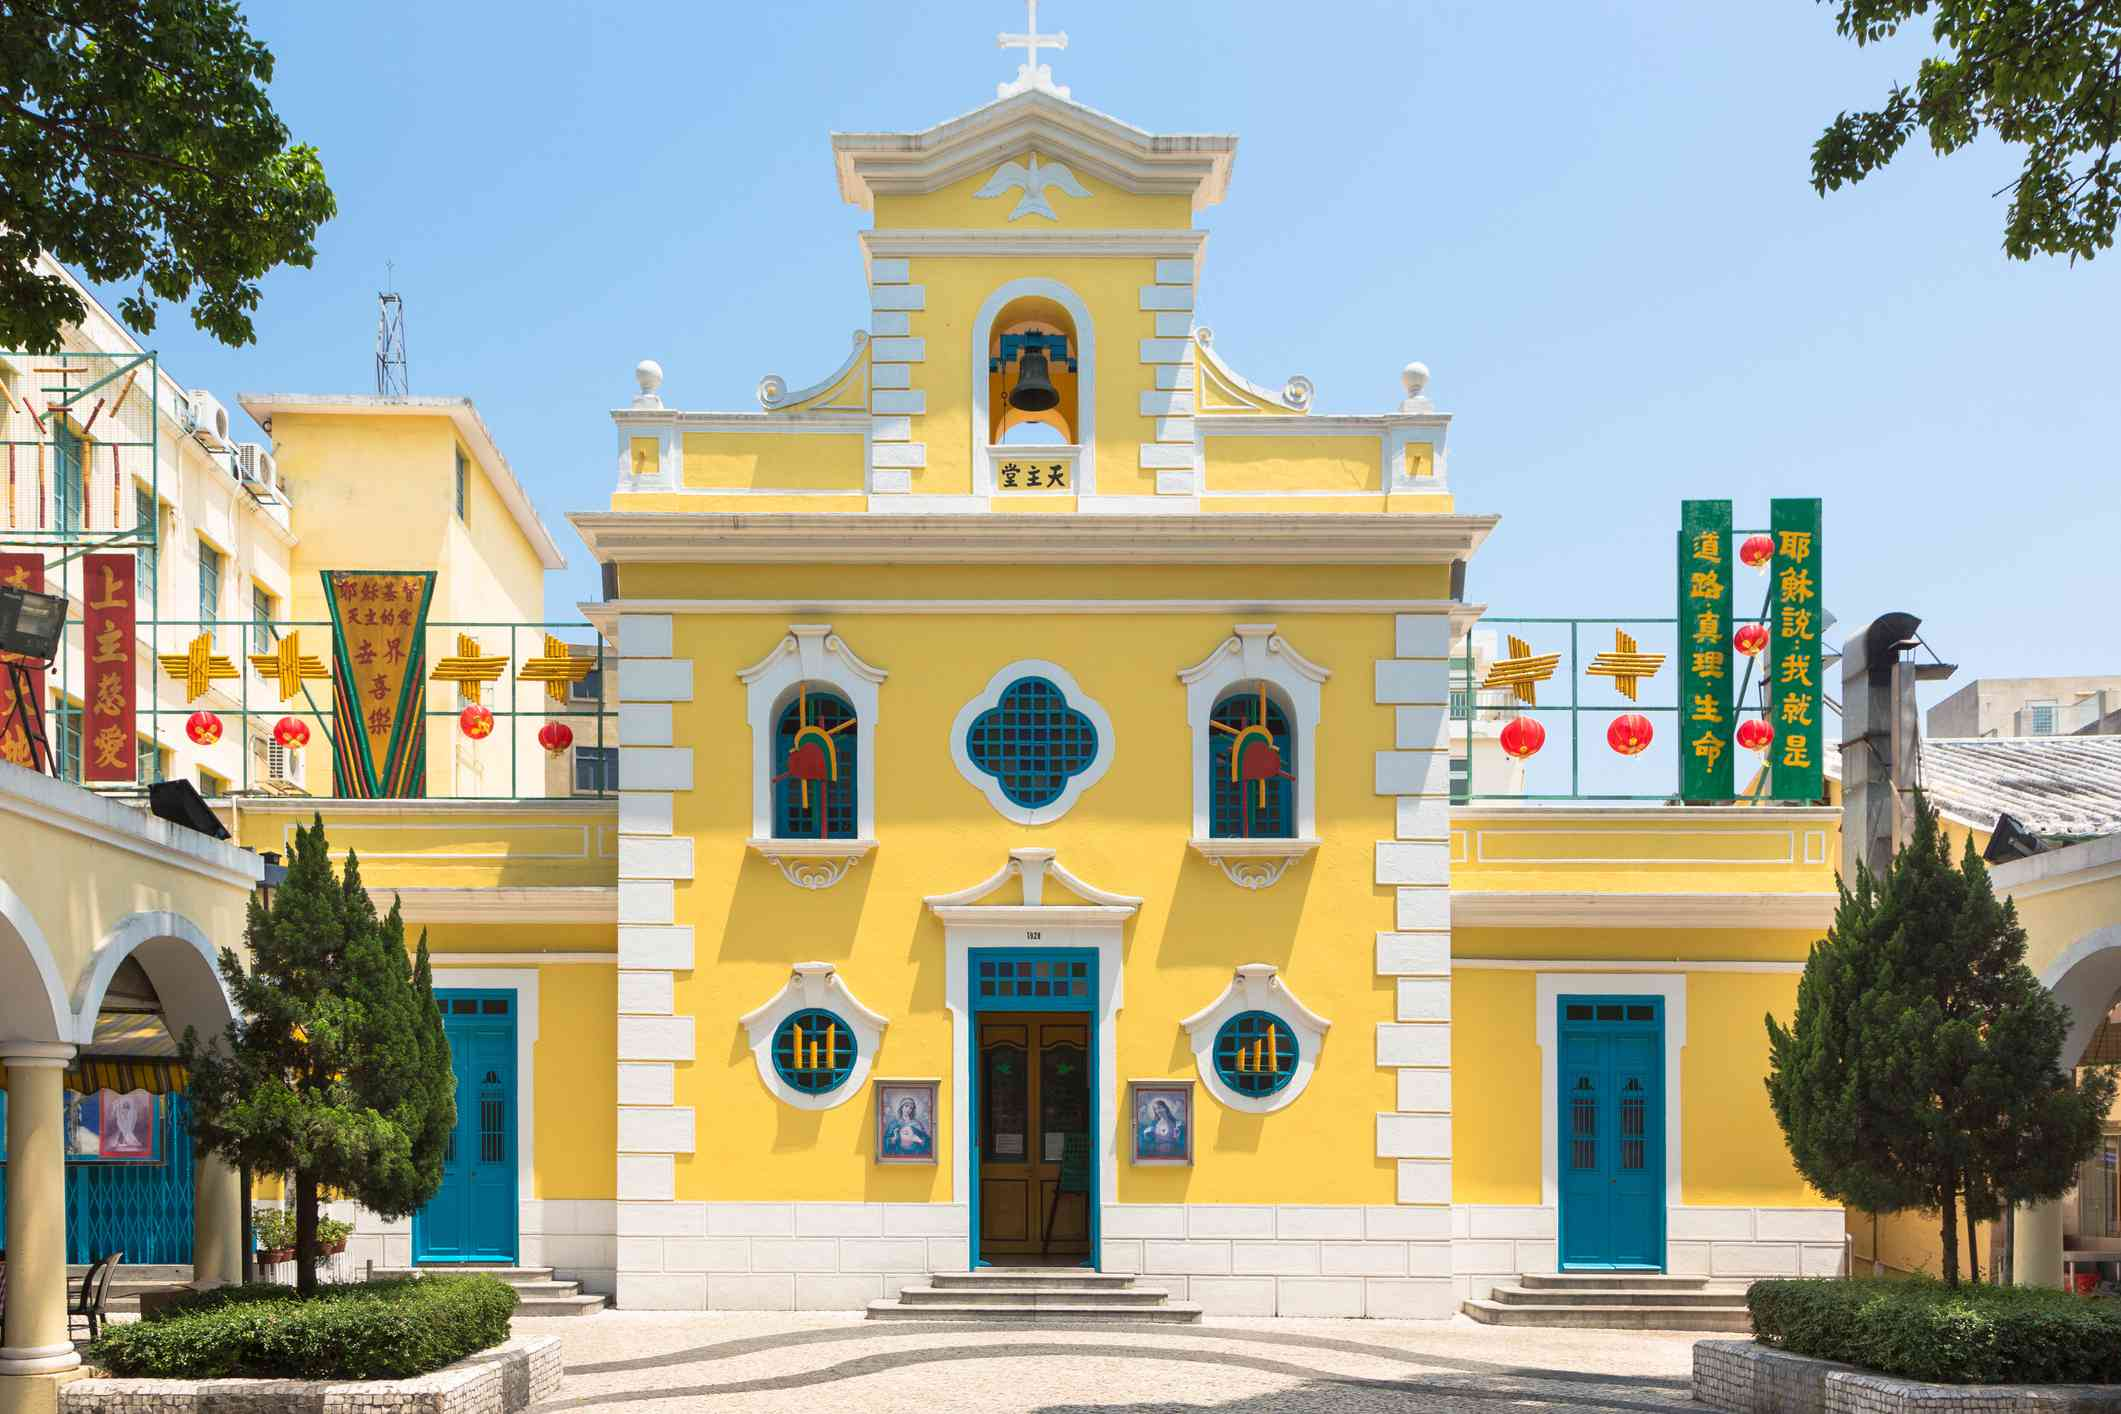 yellow church of St. Francis Xavier in the charming village of Coloane in Macau.